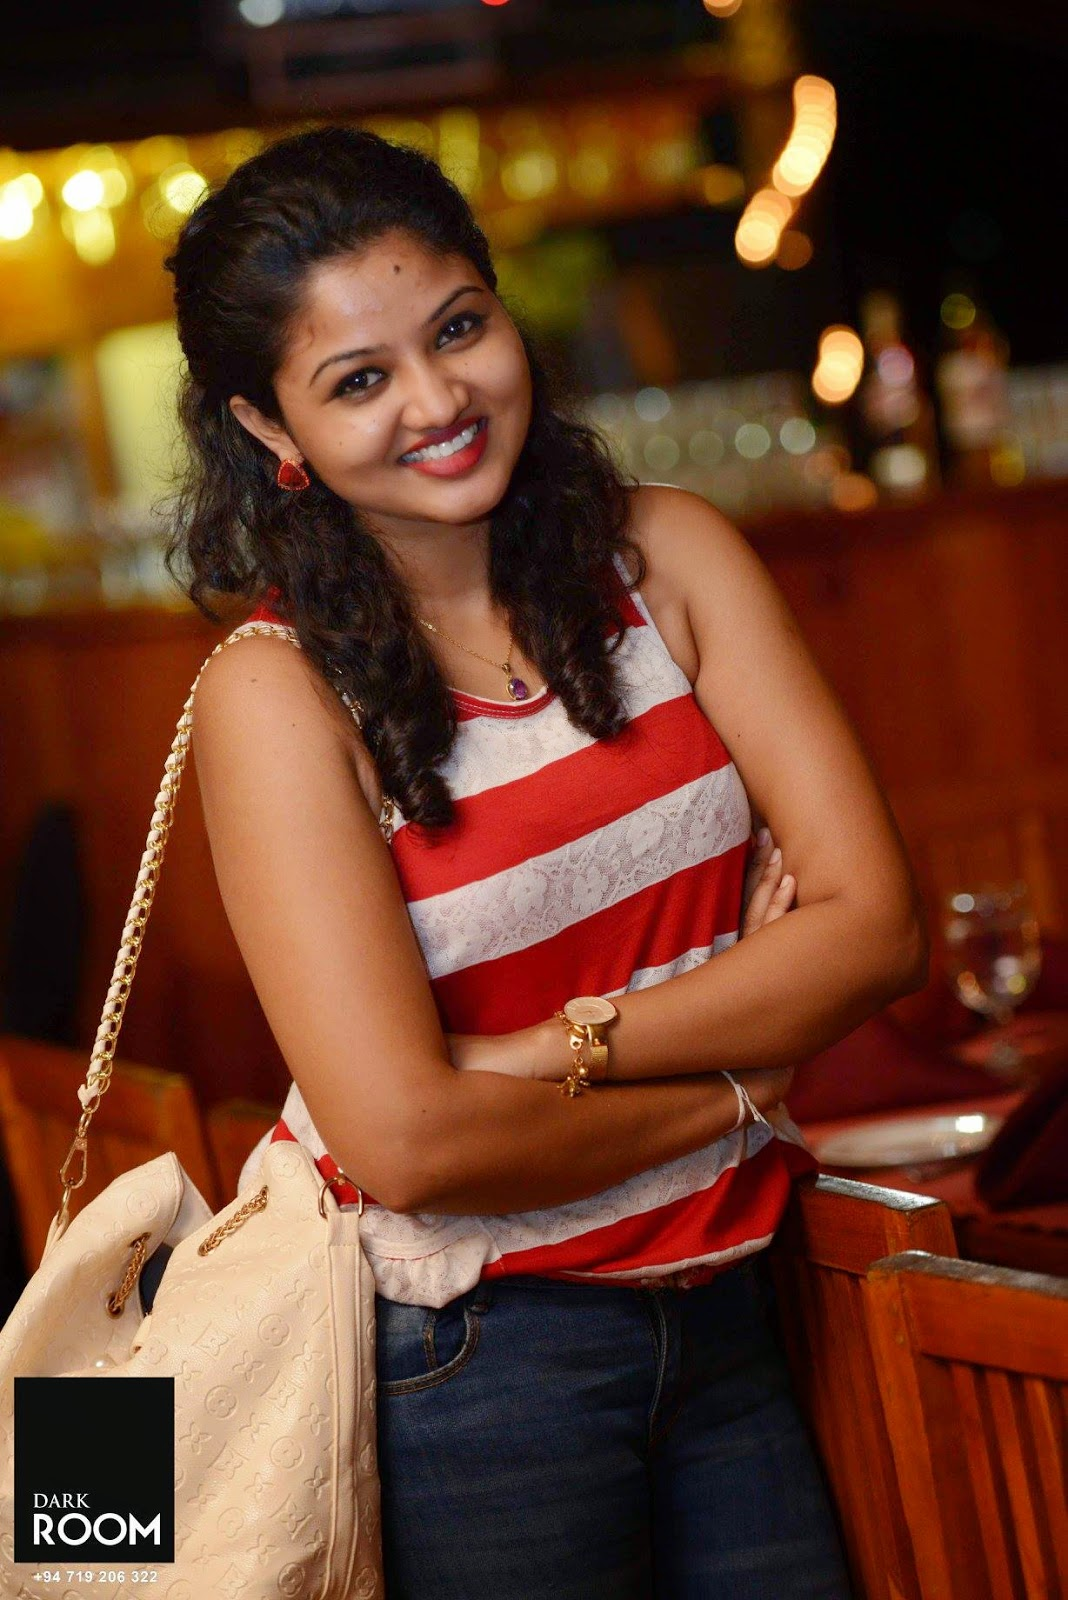 Nipunika Hewagamage sl actress